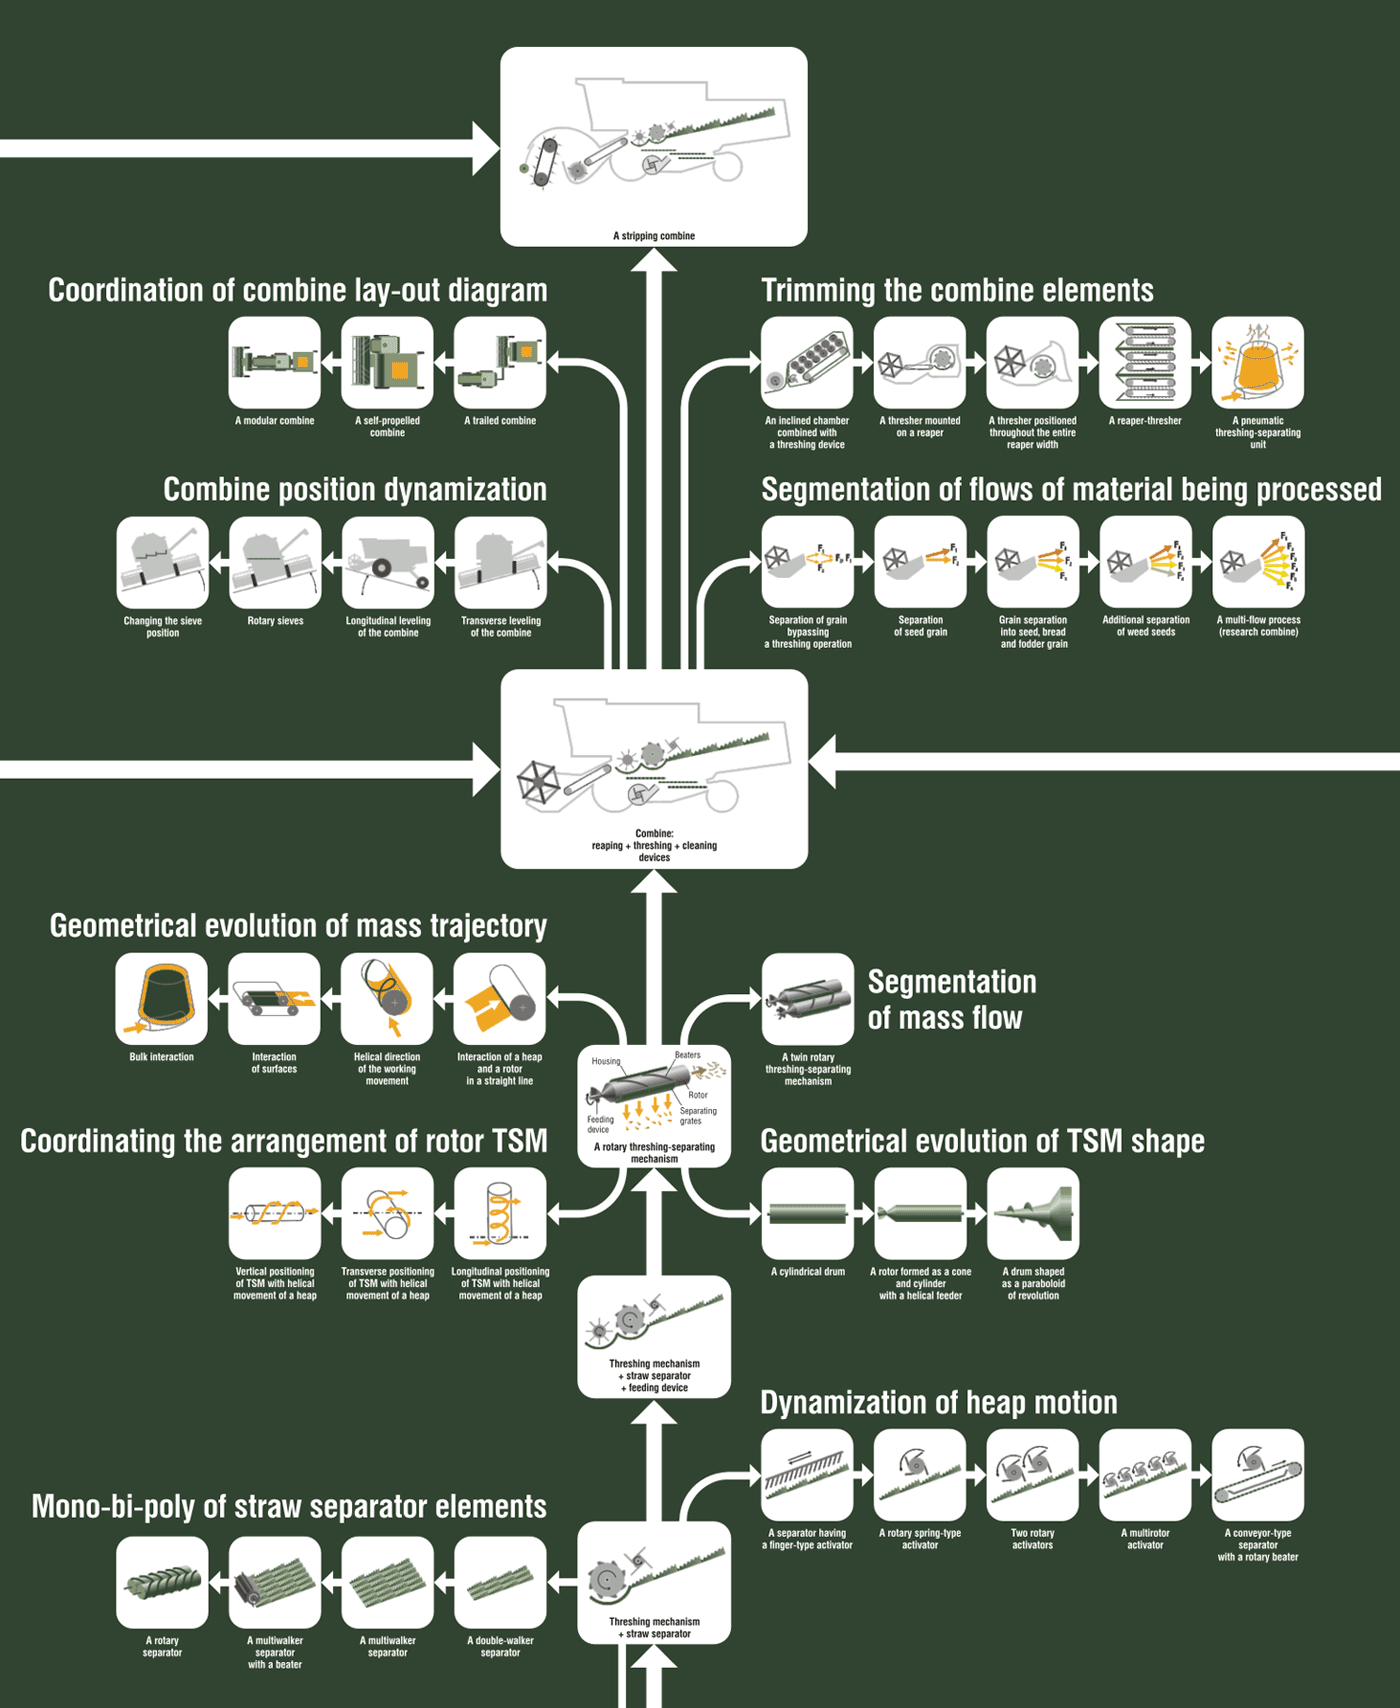 A fragment of the combine evolution tree